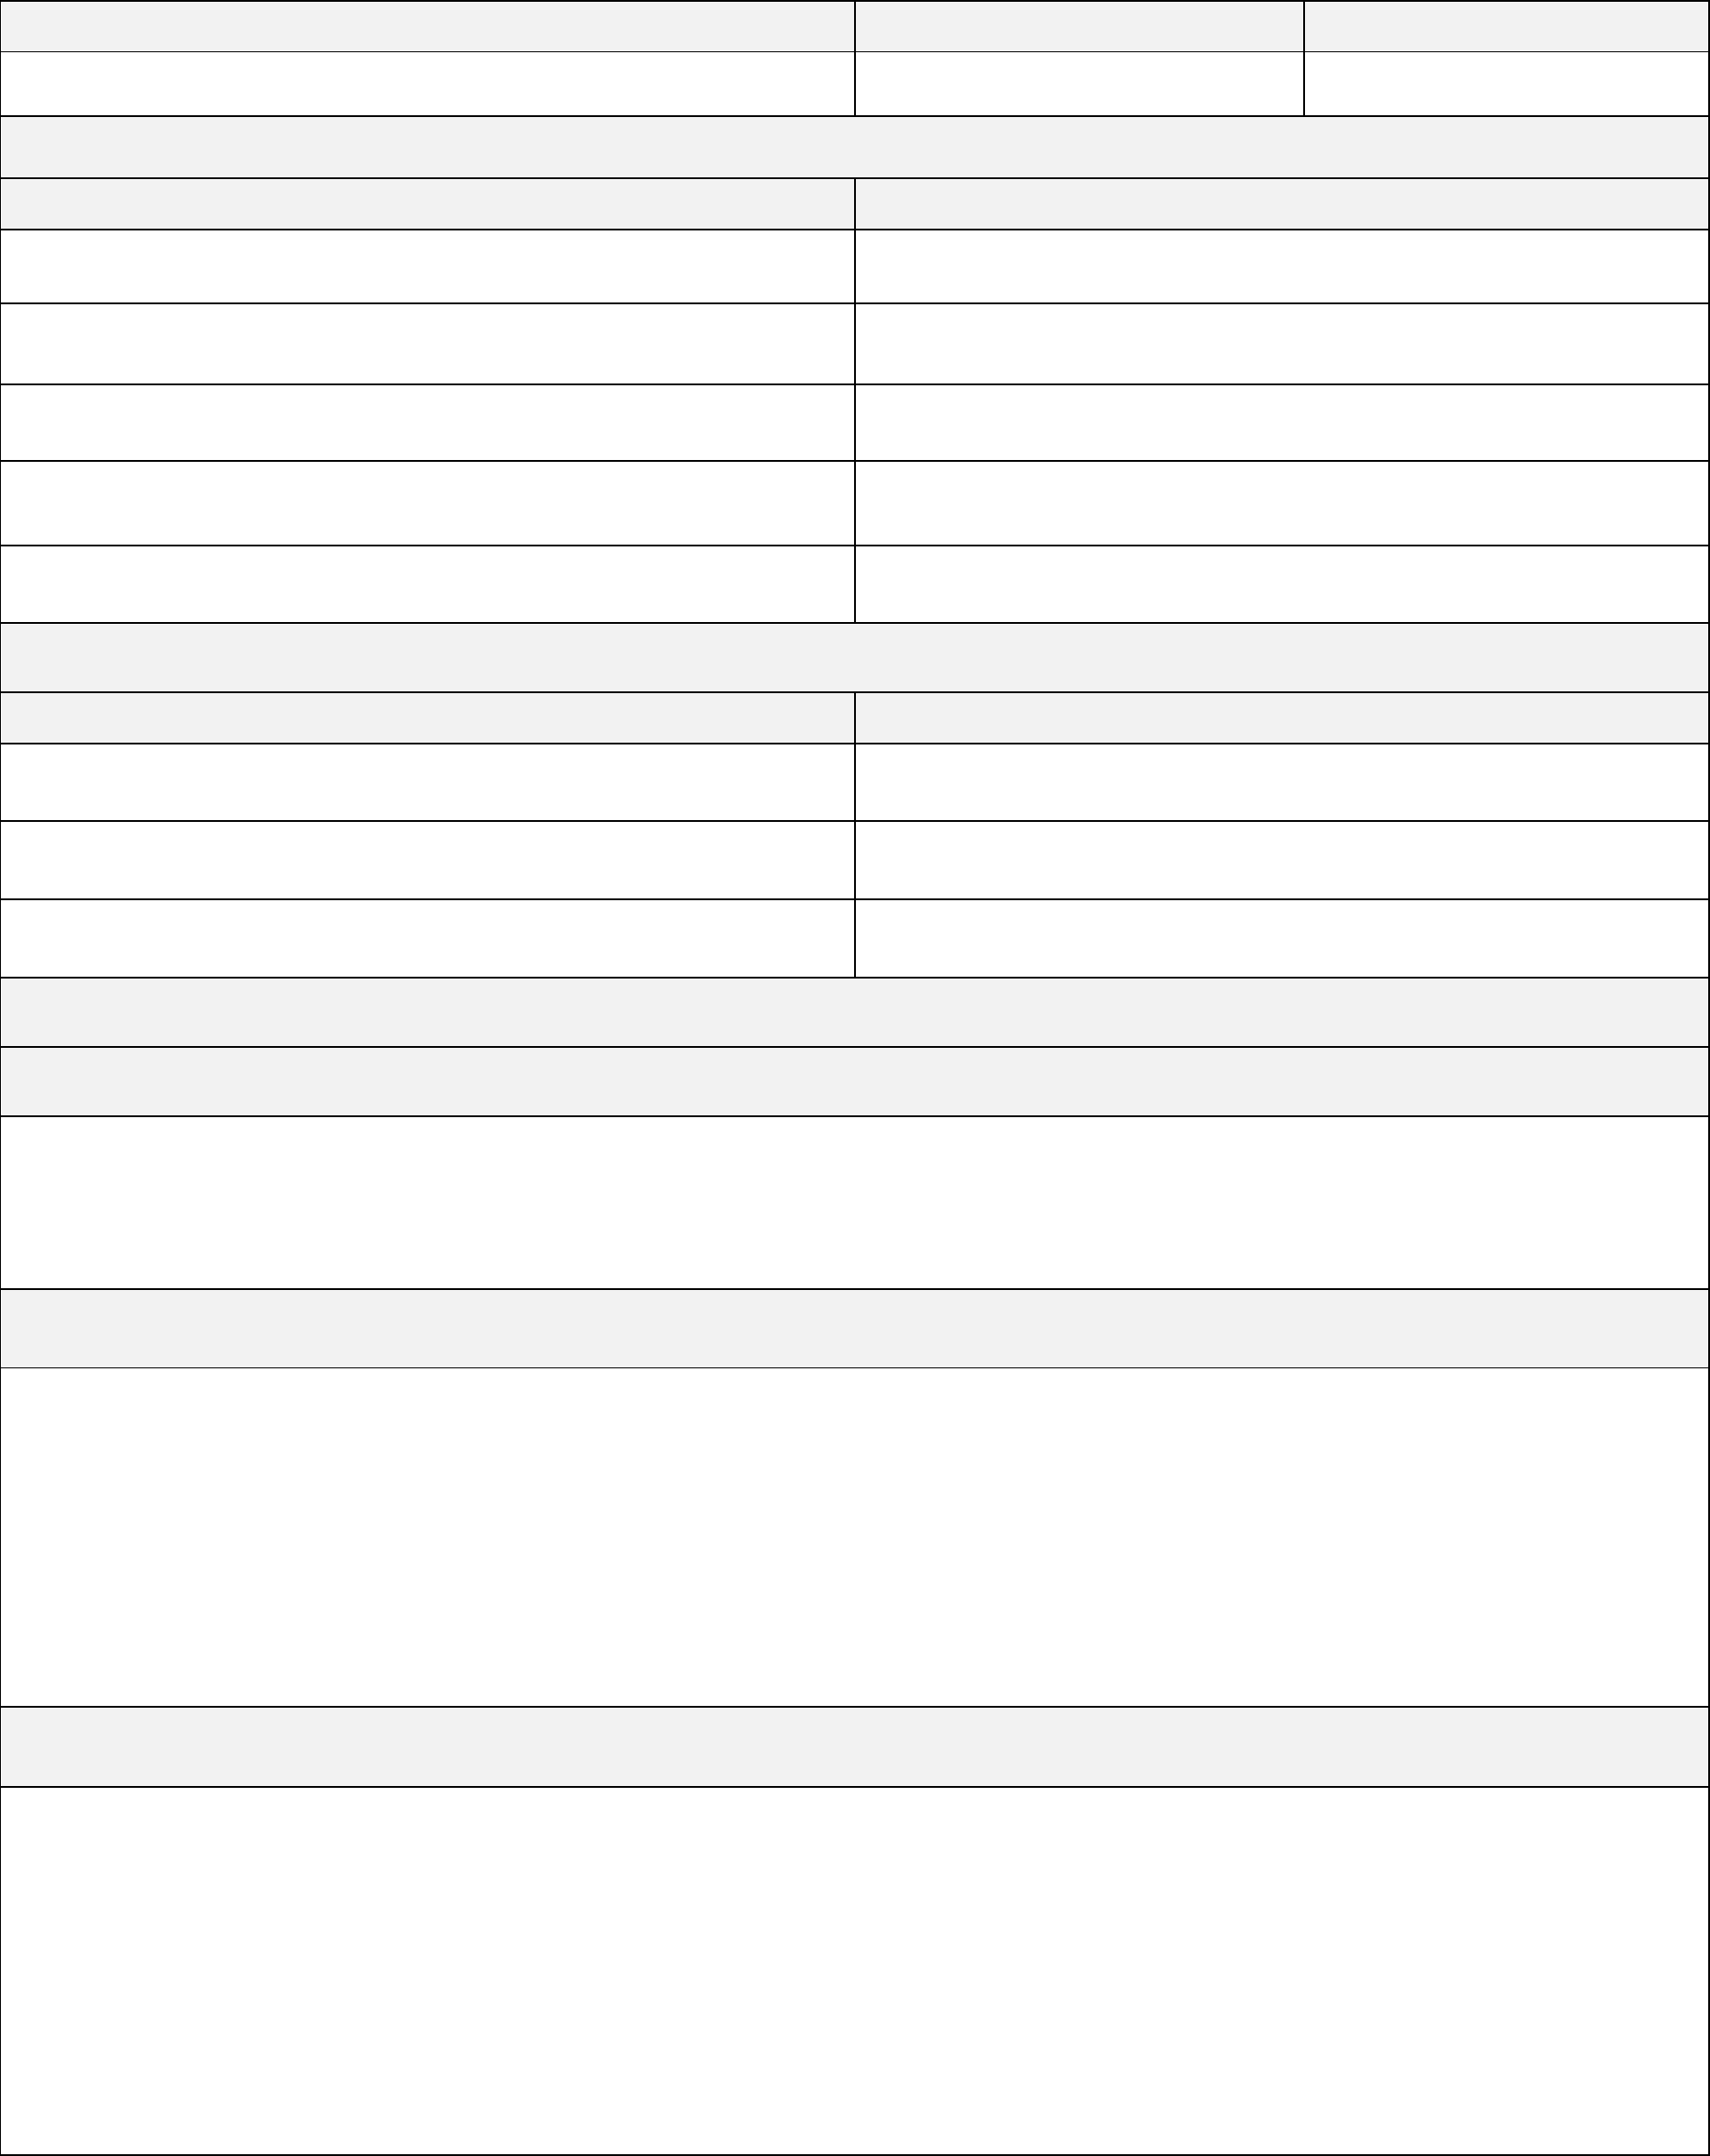 Safety committee meeting minutes template free download altavistaventures Gallery